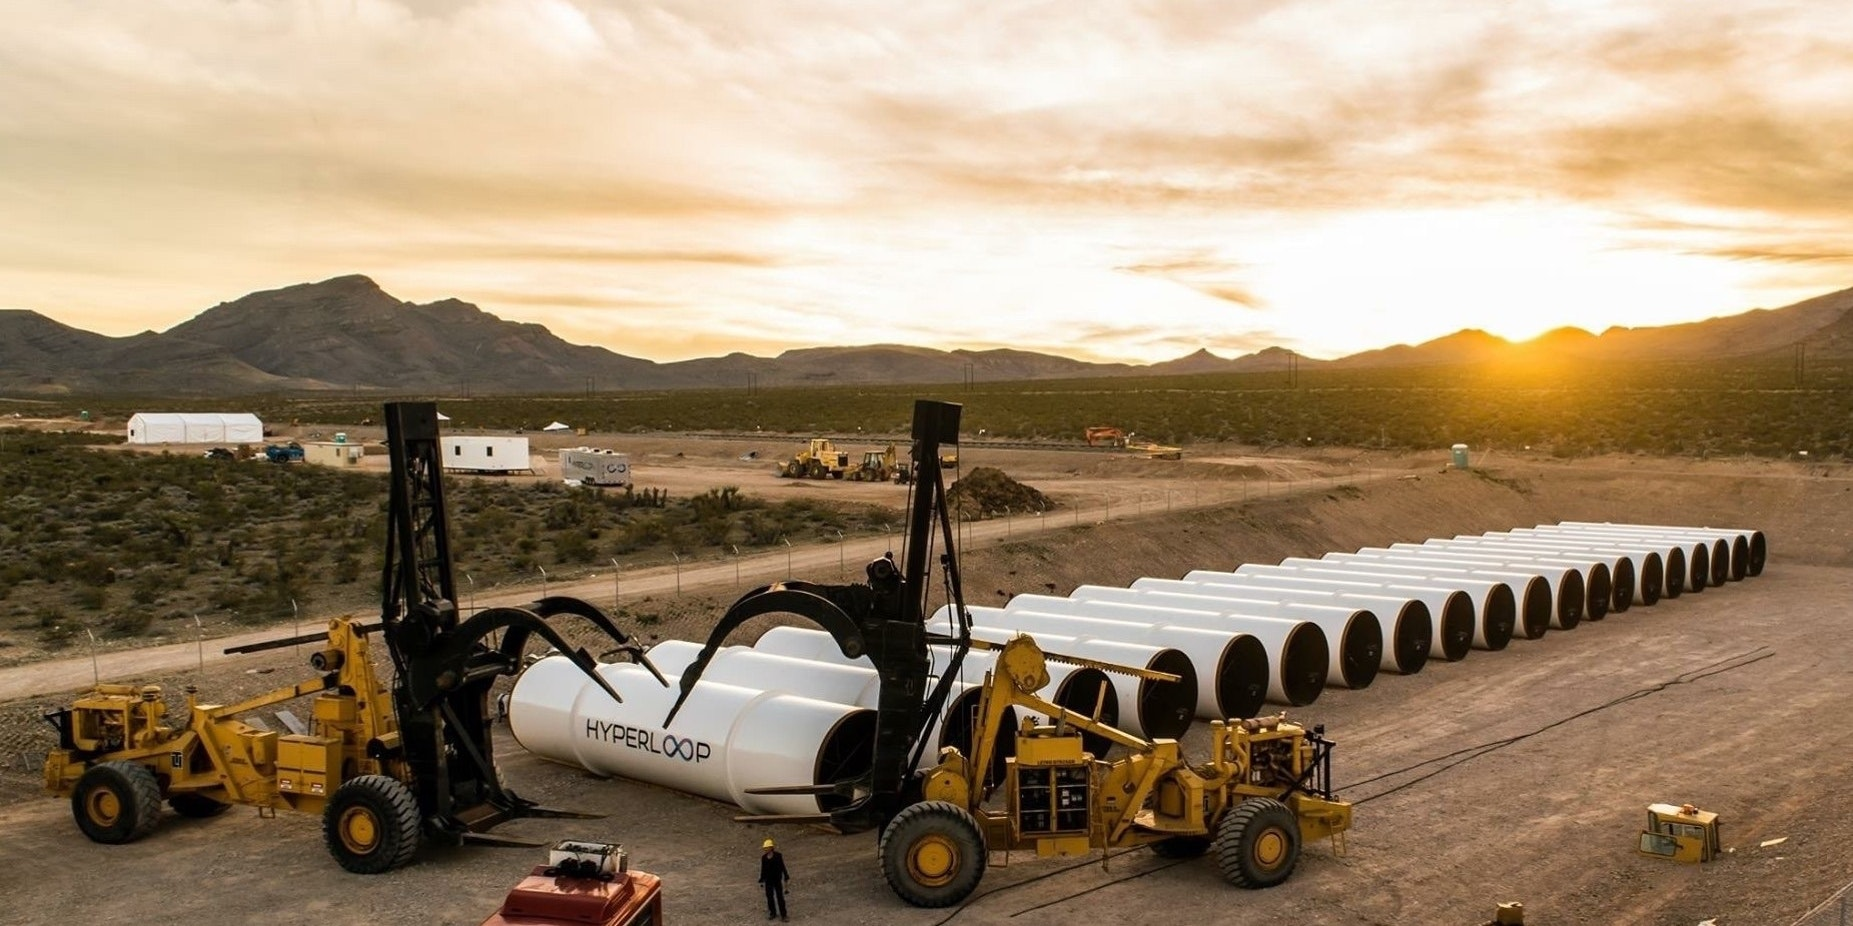 Hyperloop One to Conduct First Test of Its Propulsion System Today in Las Vegas Desert